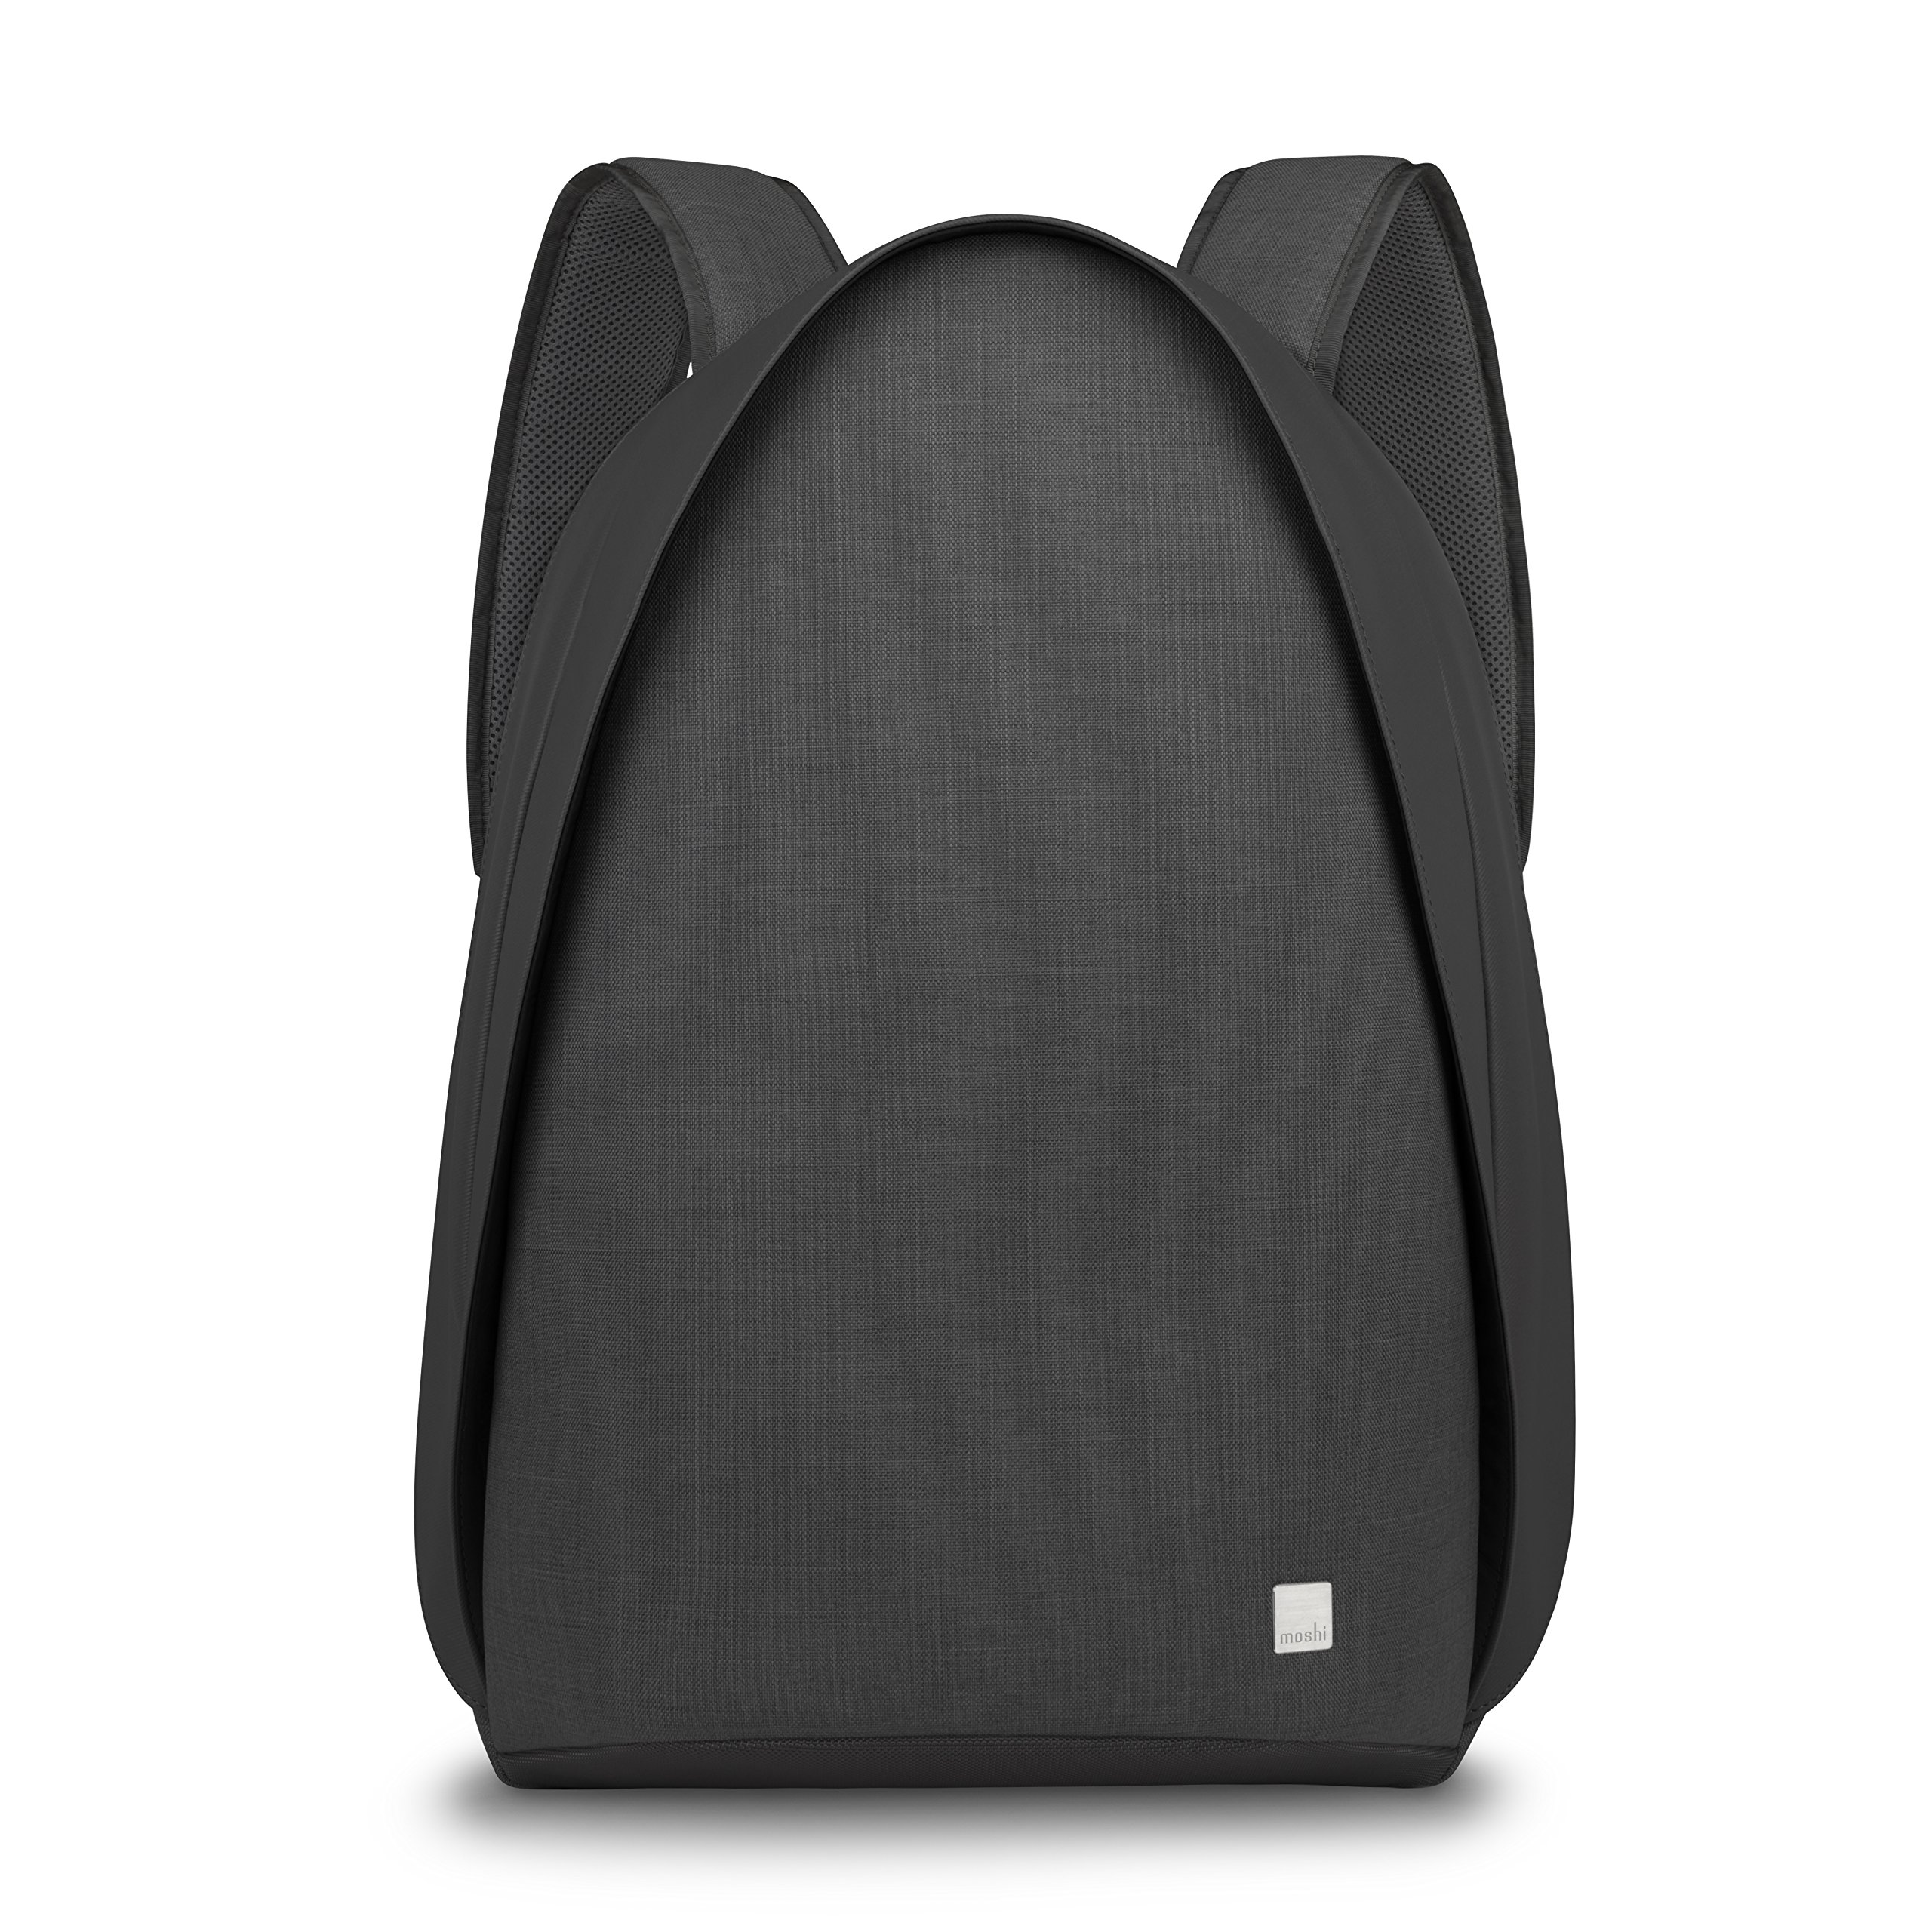 Moshi Tego anti-theft Backpack with USB Charging Port ,Water Resistant (Charcoal Black)